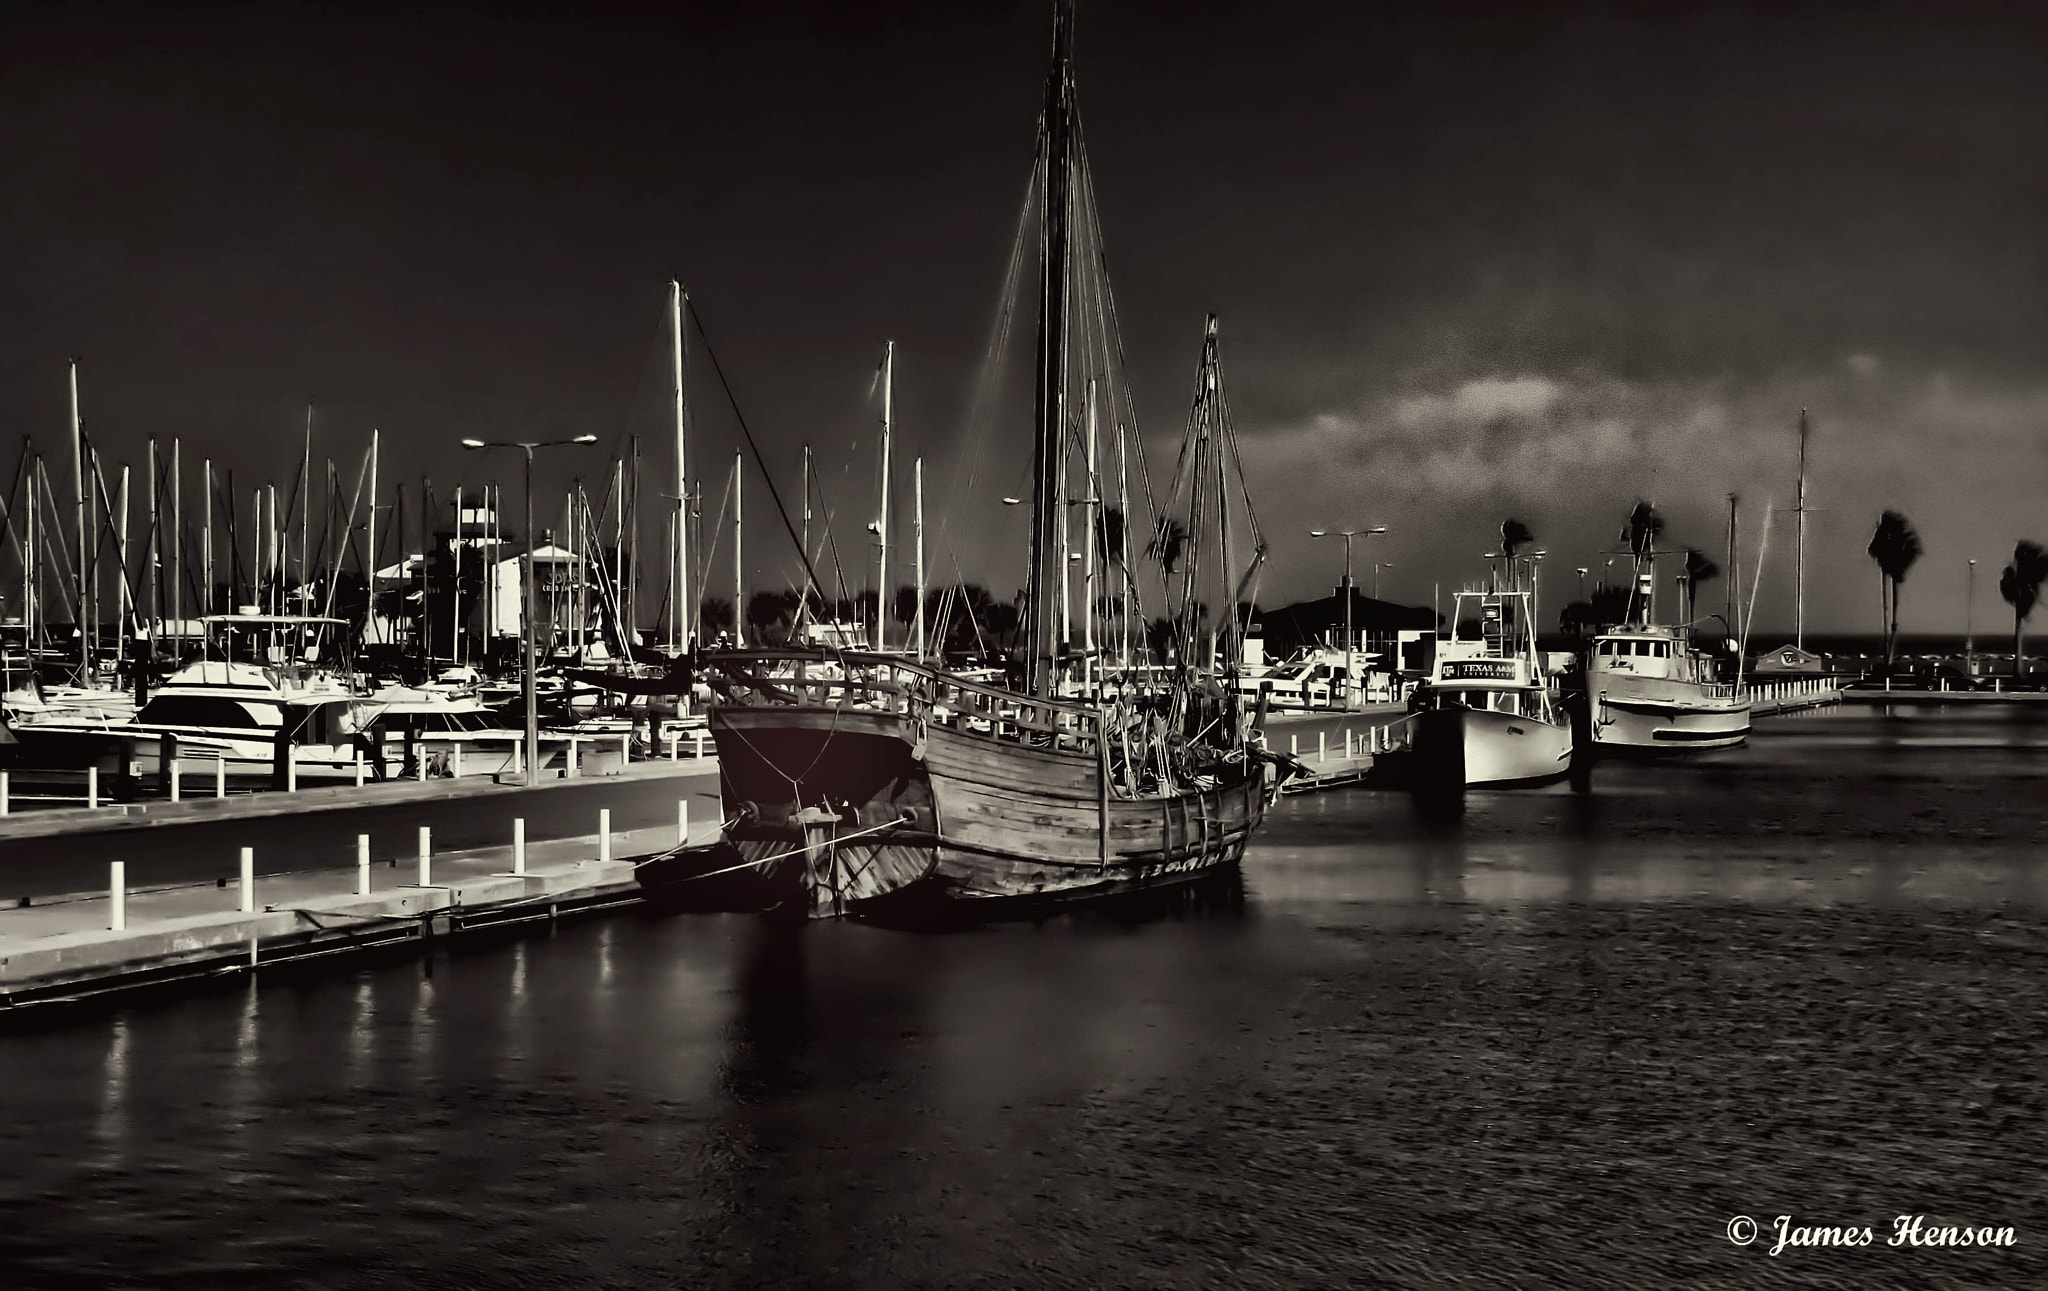 Photograph Corpus Christi Bay at Rest by James Henson on 500px